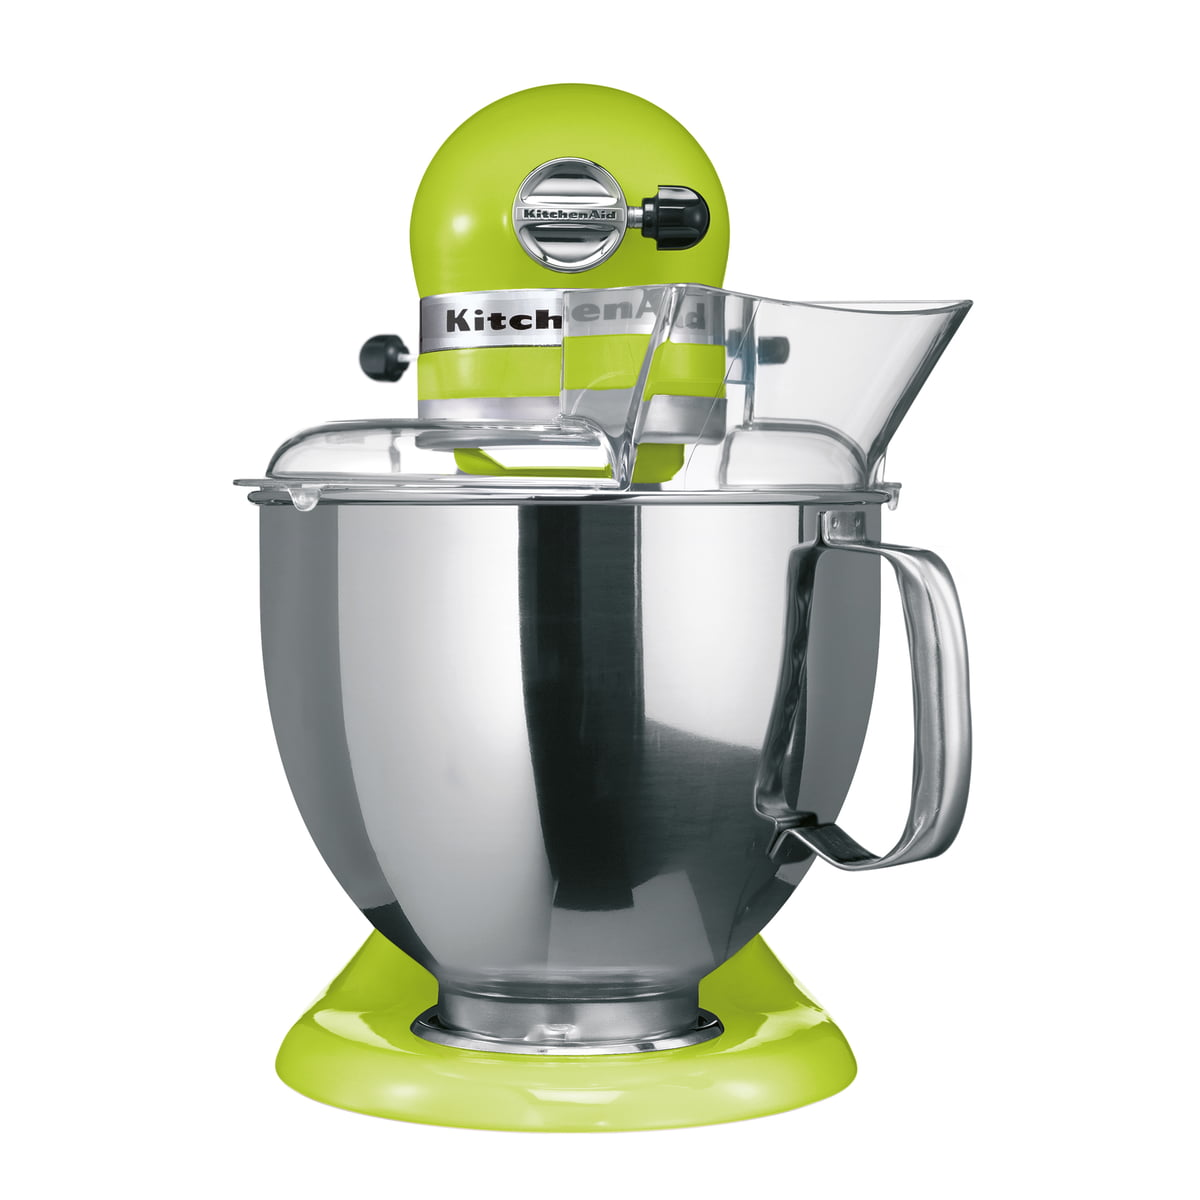 Artisan Kitchen Appliance 4 8 L By Kitchenaid